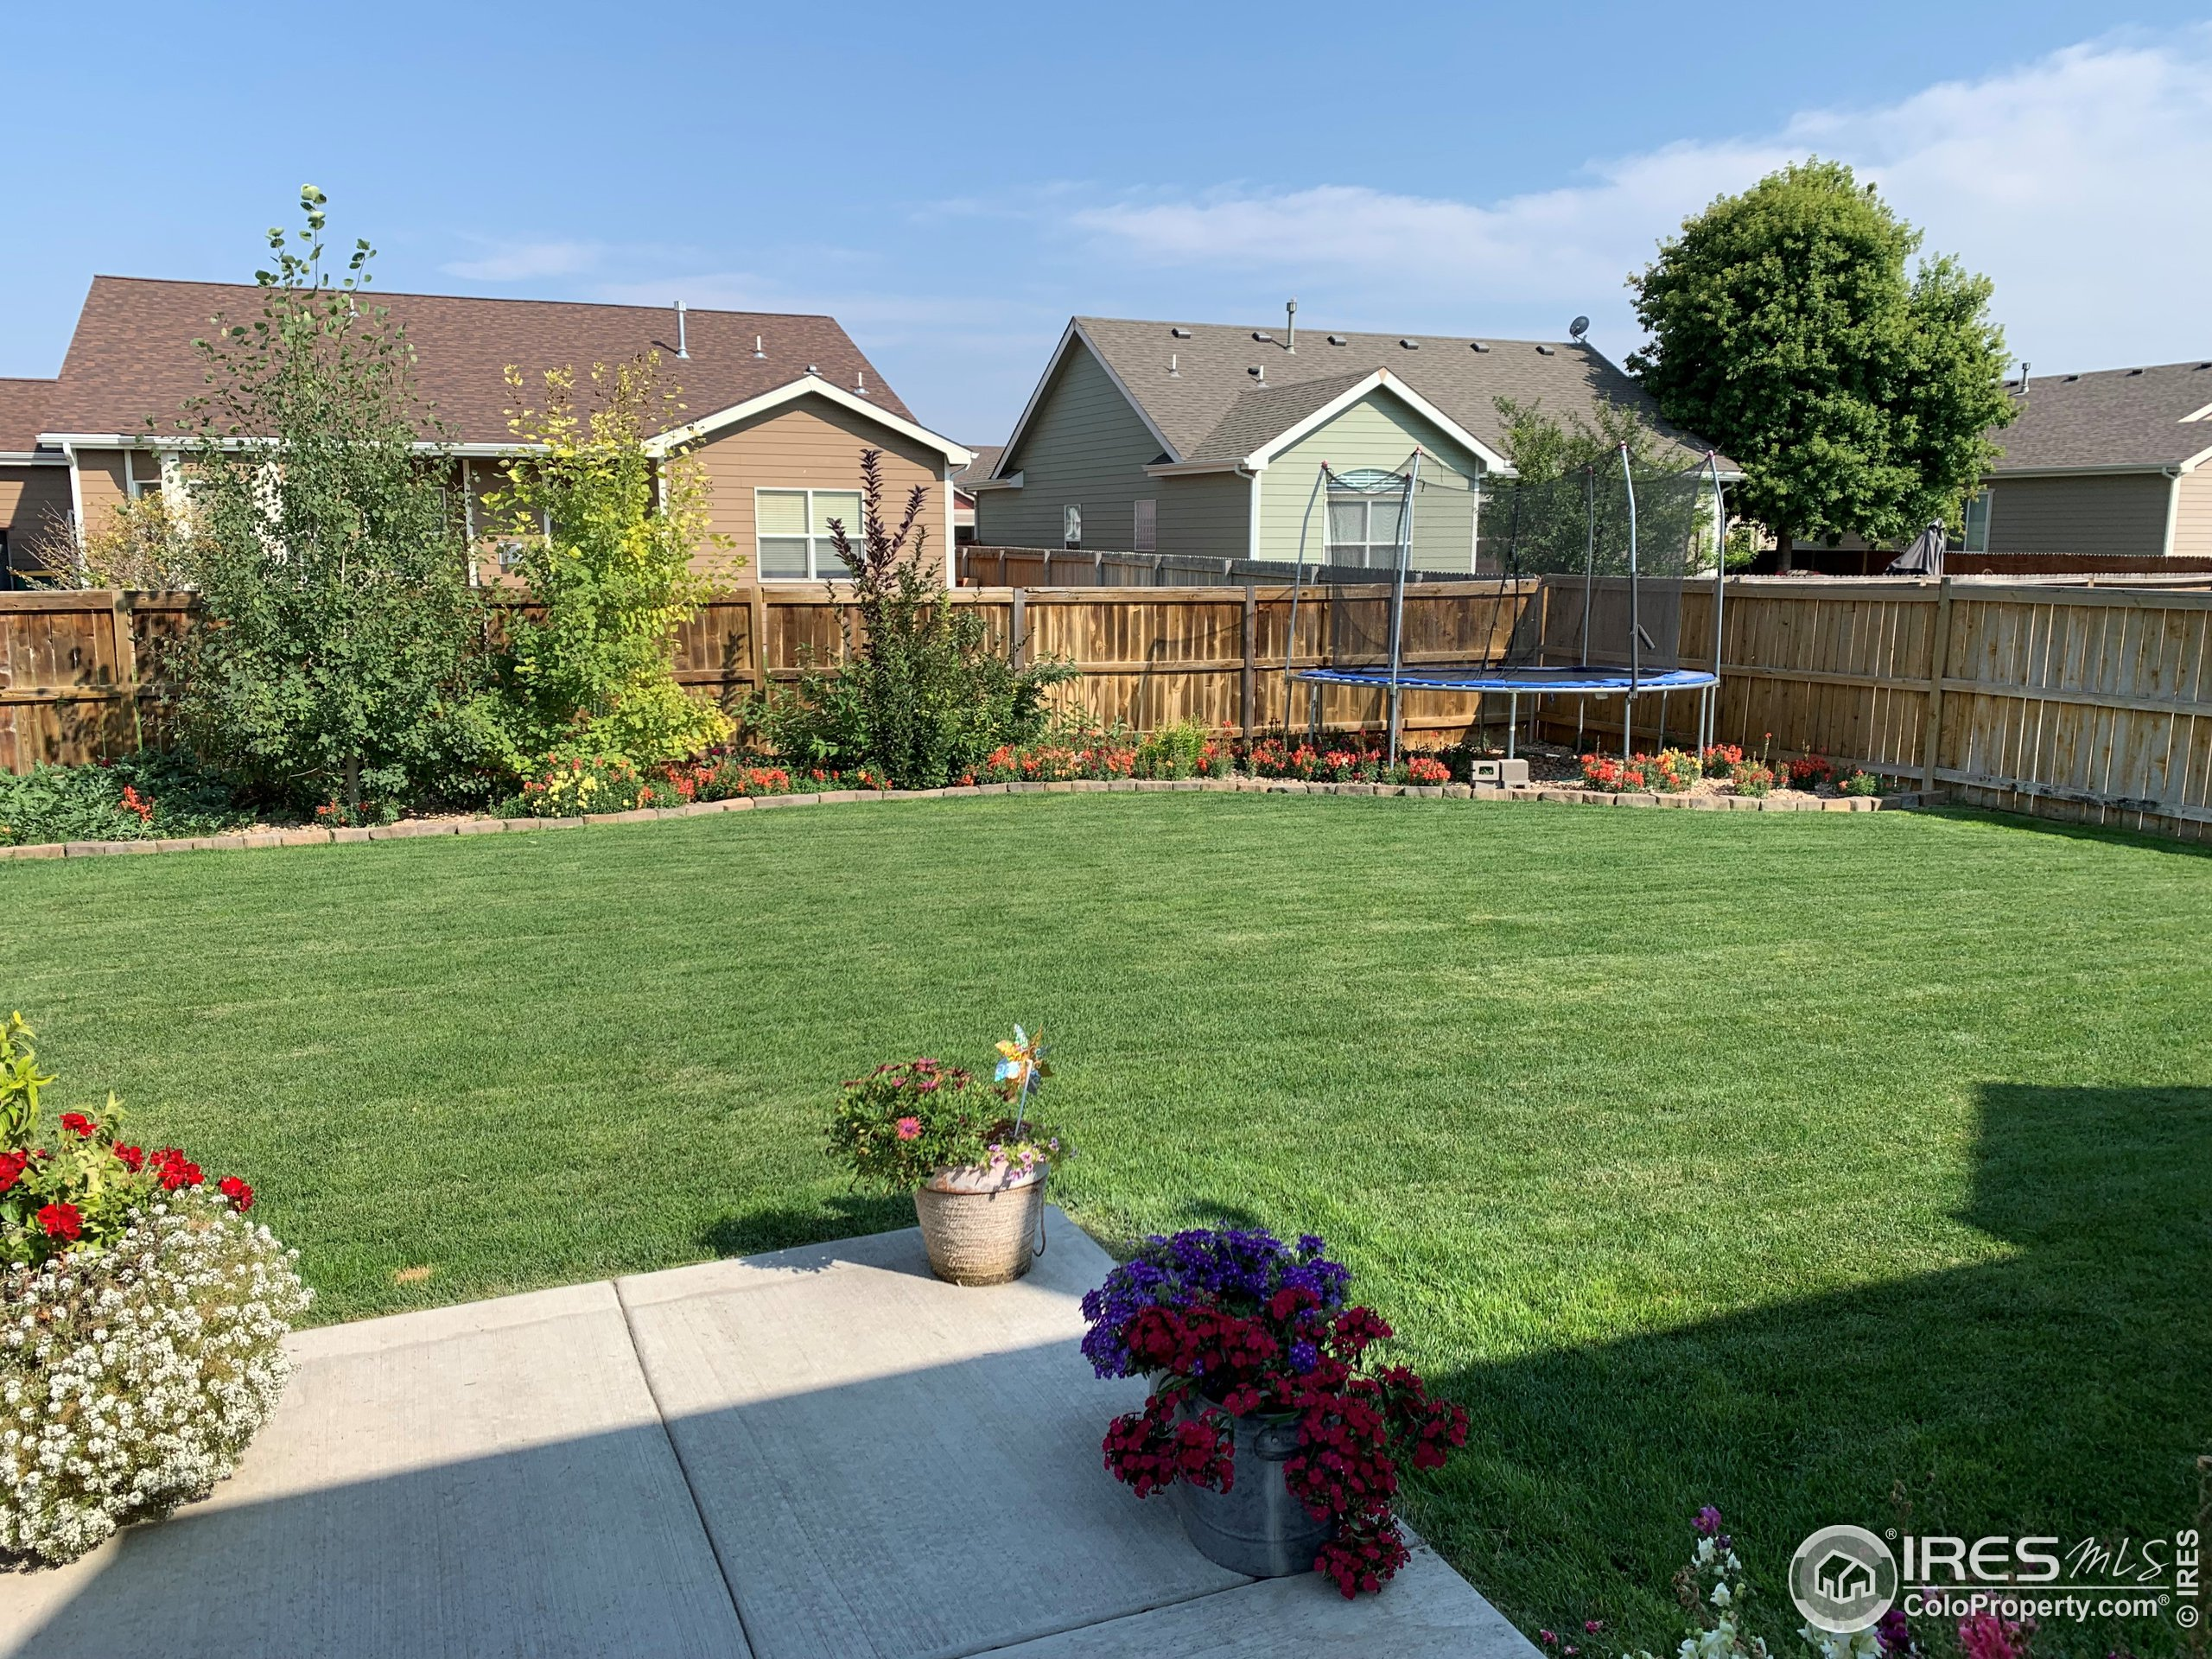 Backyard is full of flowers, plants, and garden sections along with lush green grass